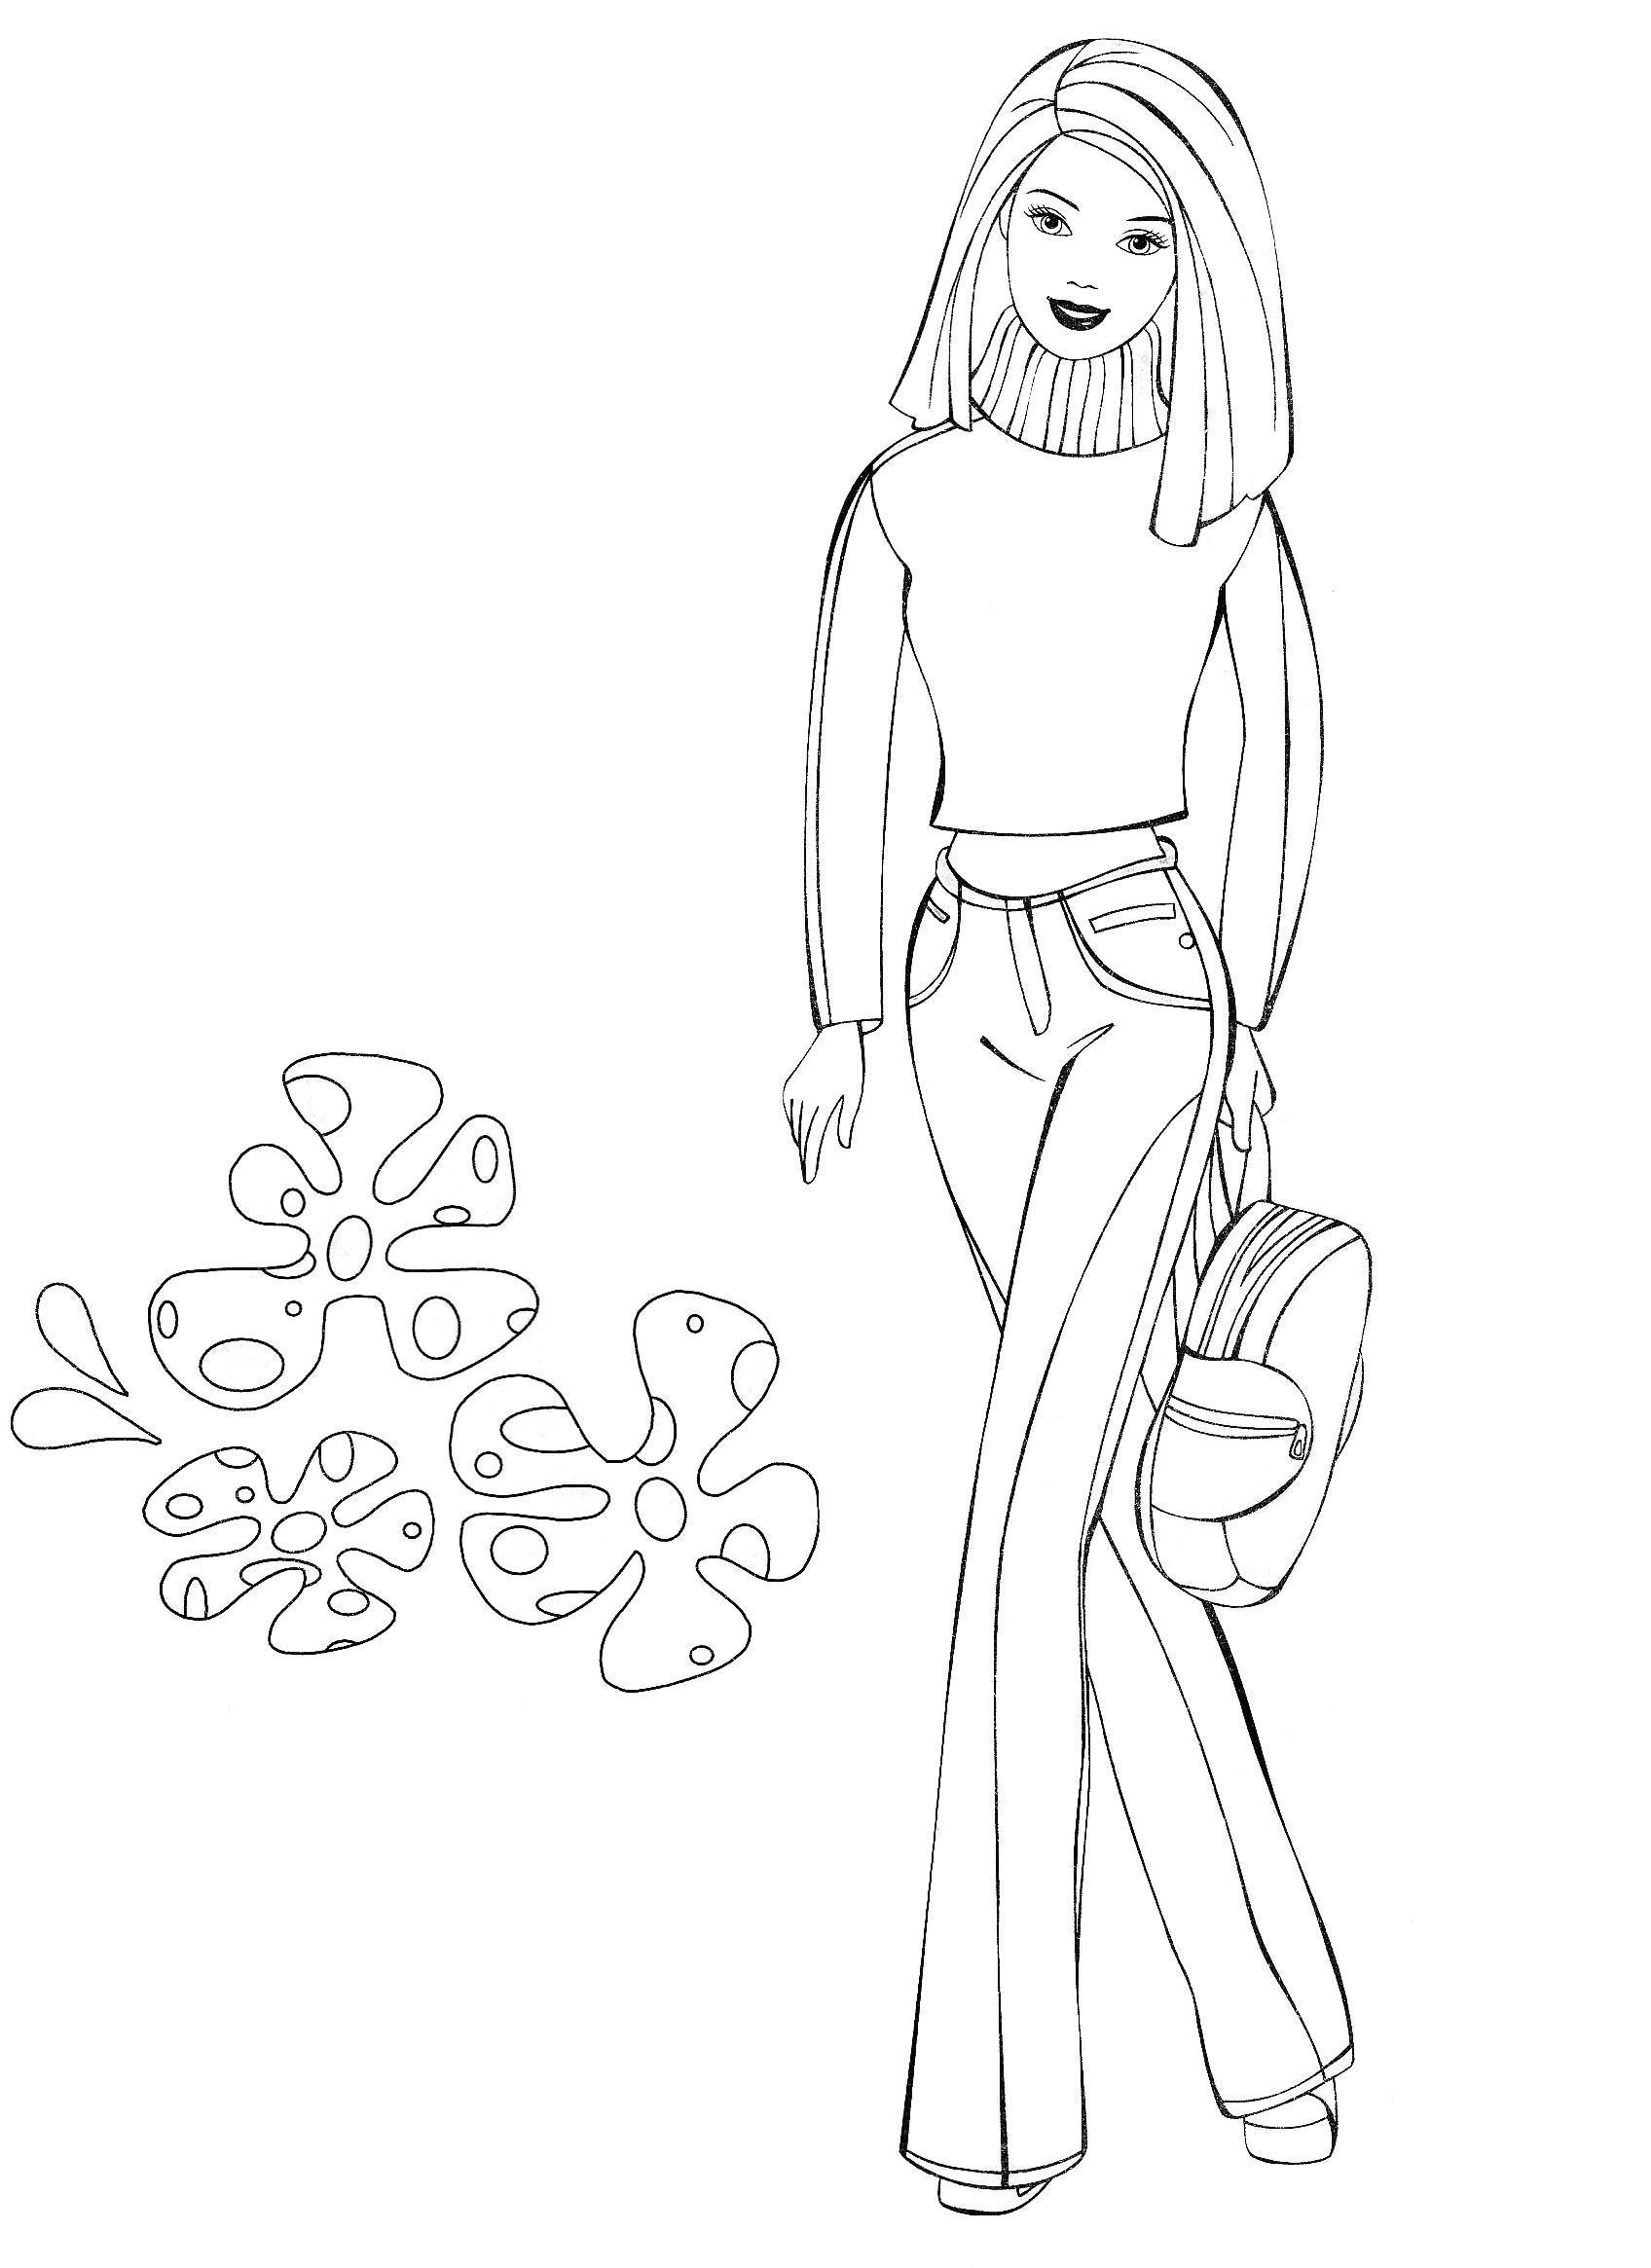 coloring pages online barbie movie - photo#7